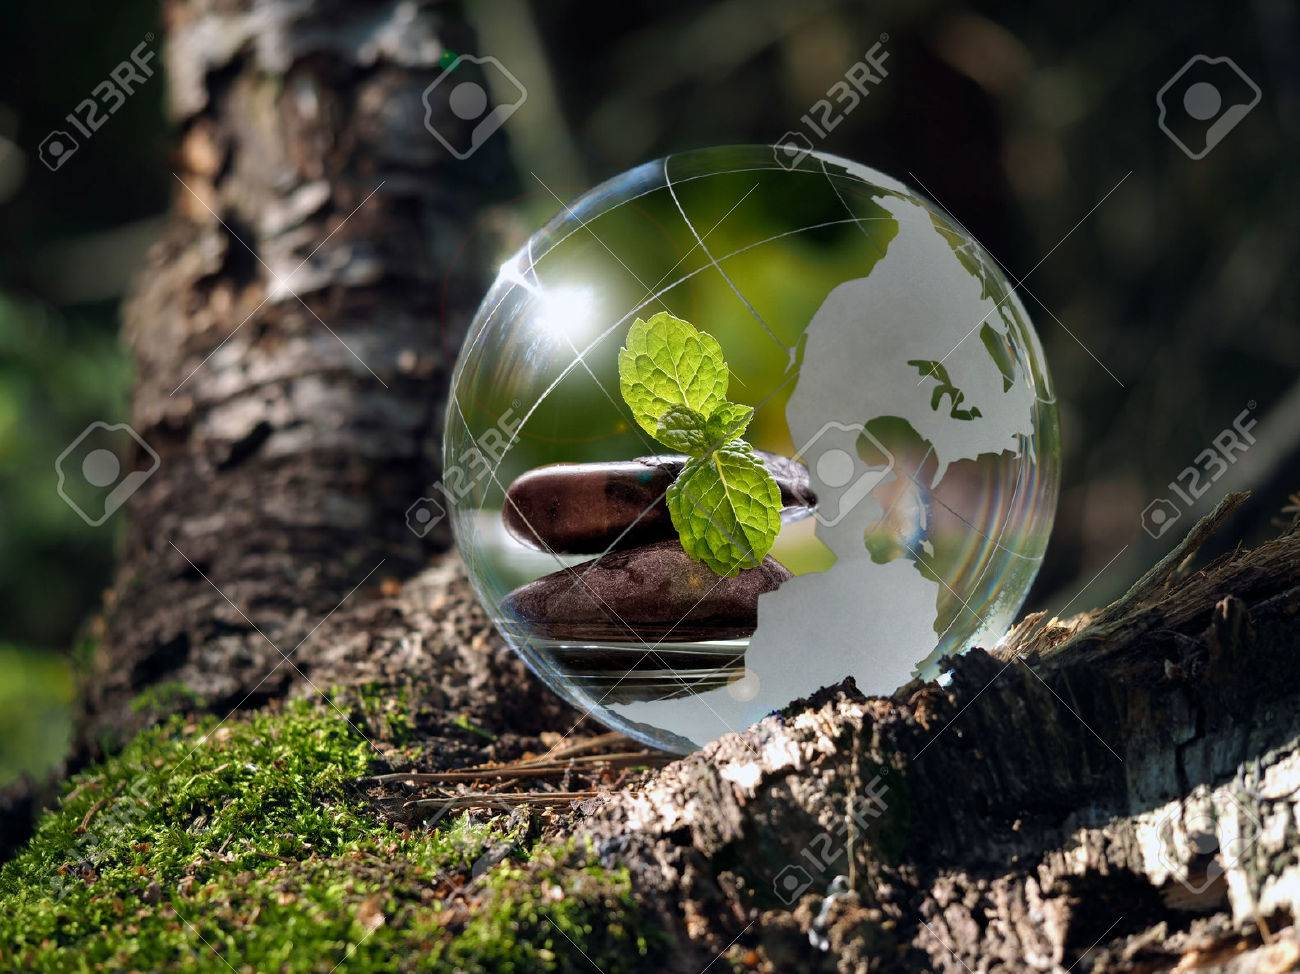 Transparent ball in the green forest. In the sphere reflected cairn, green mint leaves, water. Glass - a material, concepts and themes, zen, meditation, environment, ecology, peace, - 61252834